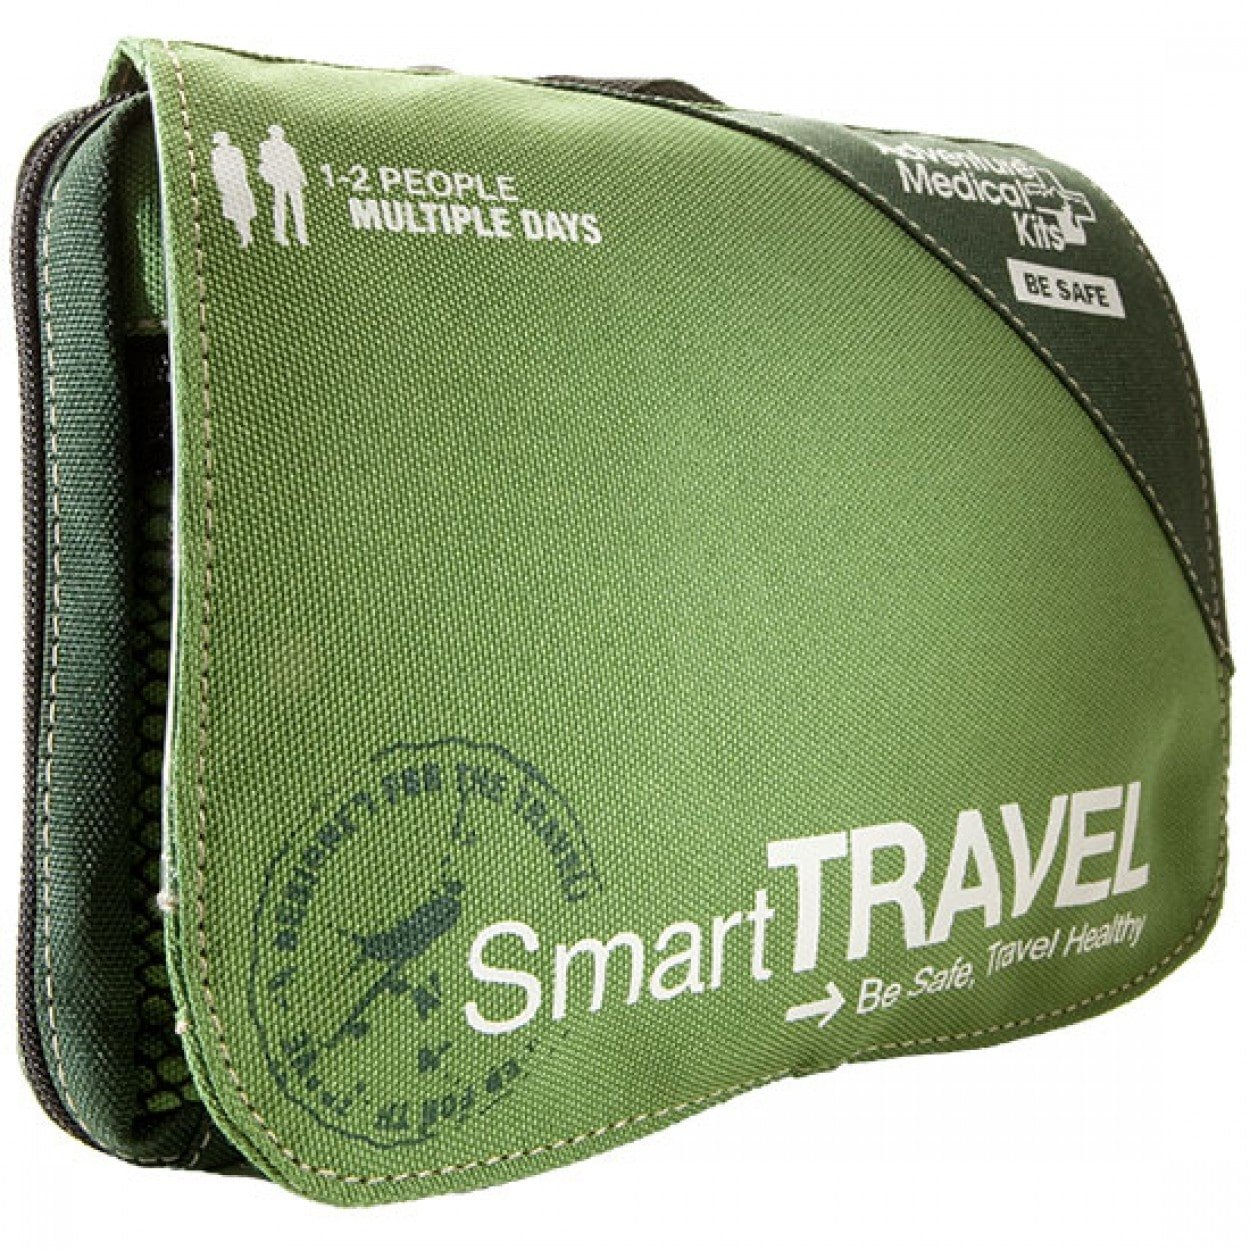 packable travel medical kit